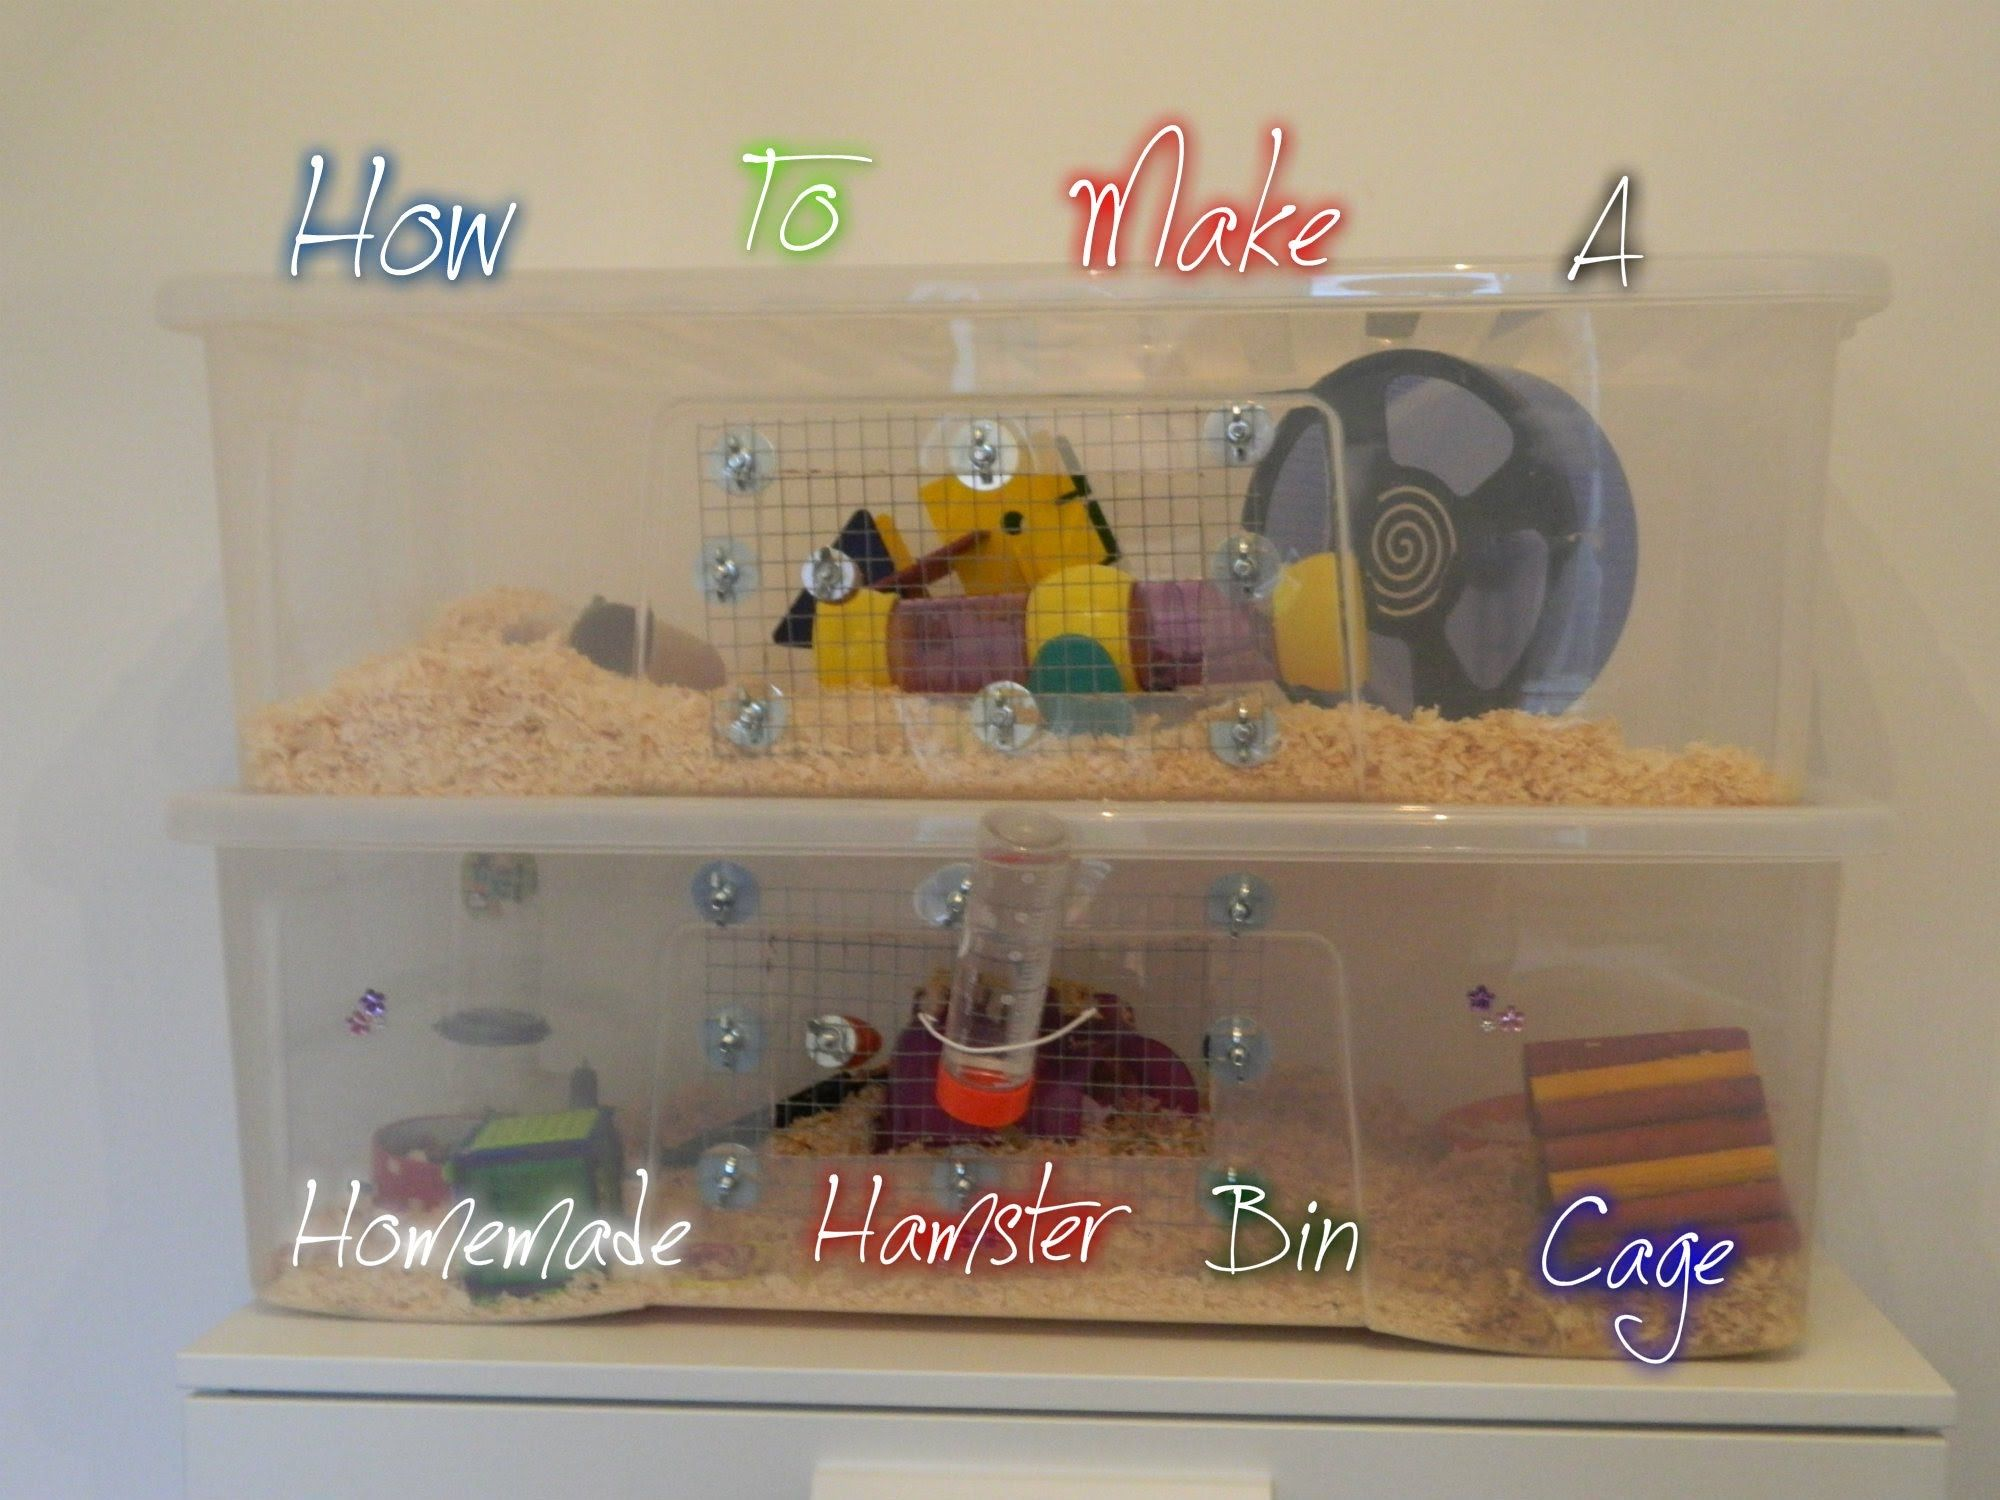 Diy hamster cage i want a small fluffy creature for Diy hamster bin cage